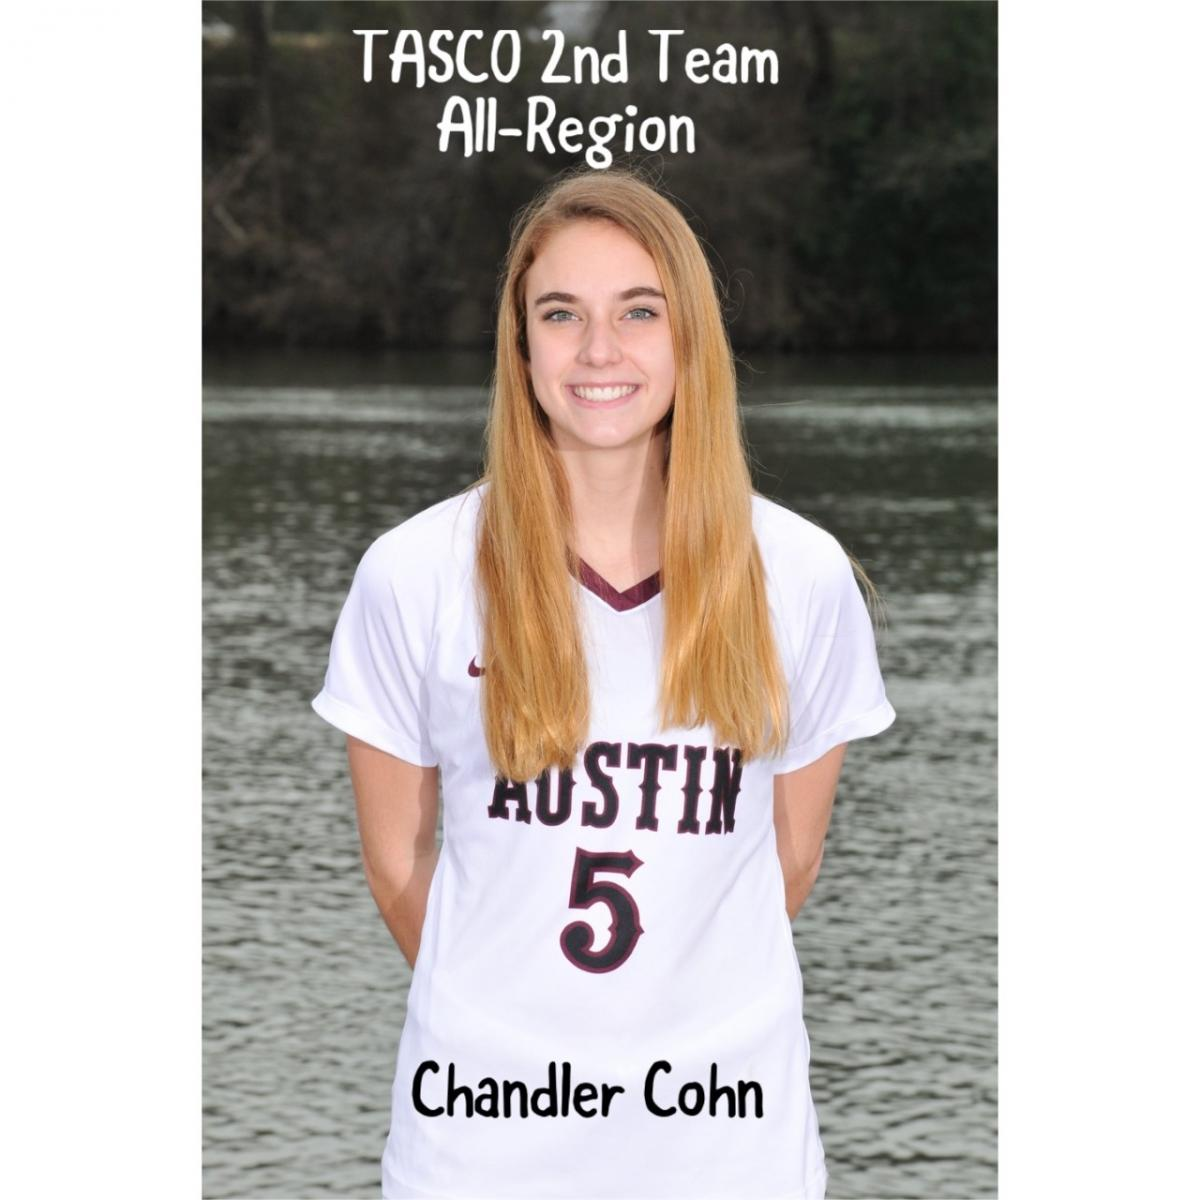 Chandler Cohn named to TASCO All-Region Team